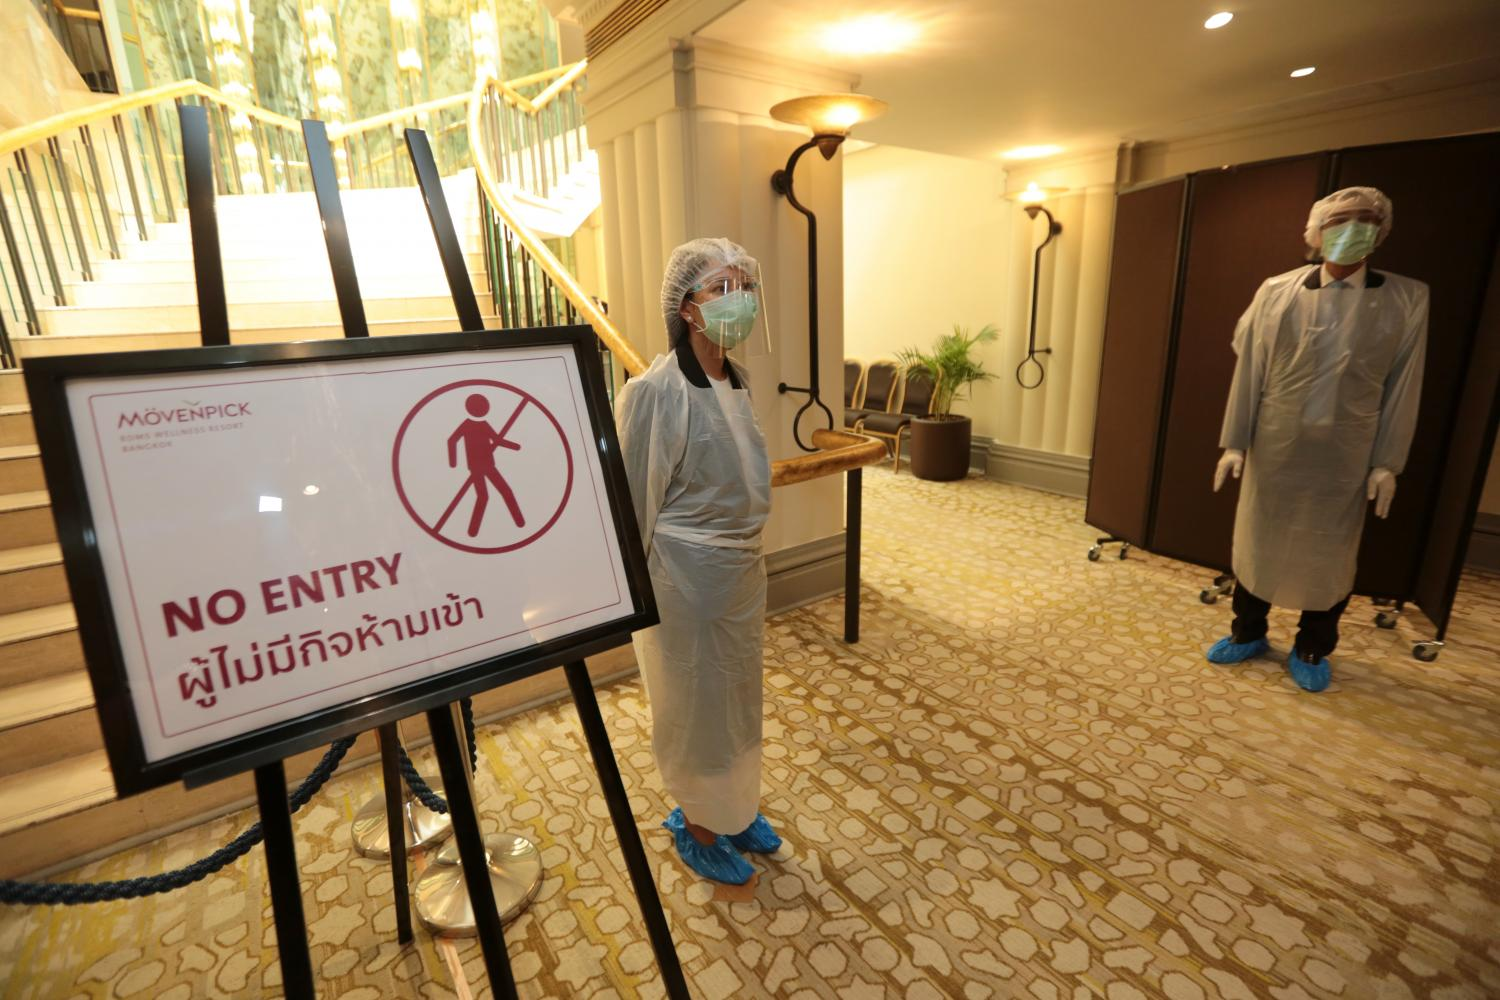 Employees stand ready in protective gear at Movenpick Hotel BDMS Wellness Resort Bangkok, one of the alternative state quarantine facilities for inbound travellers. Chanat Katanyu